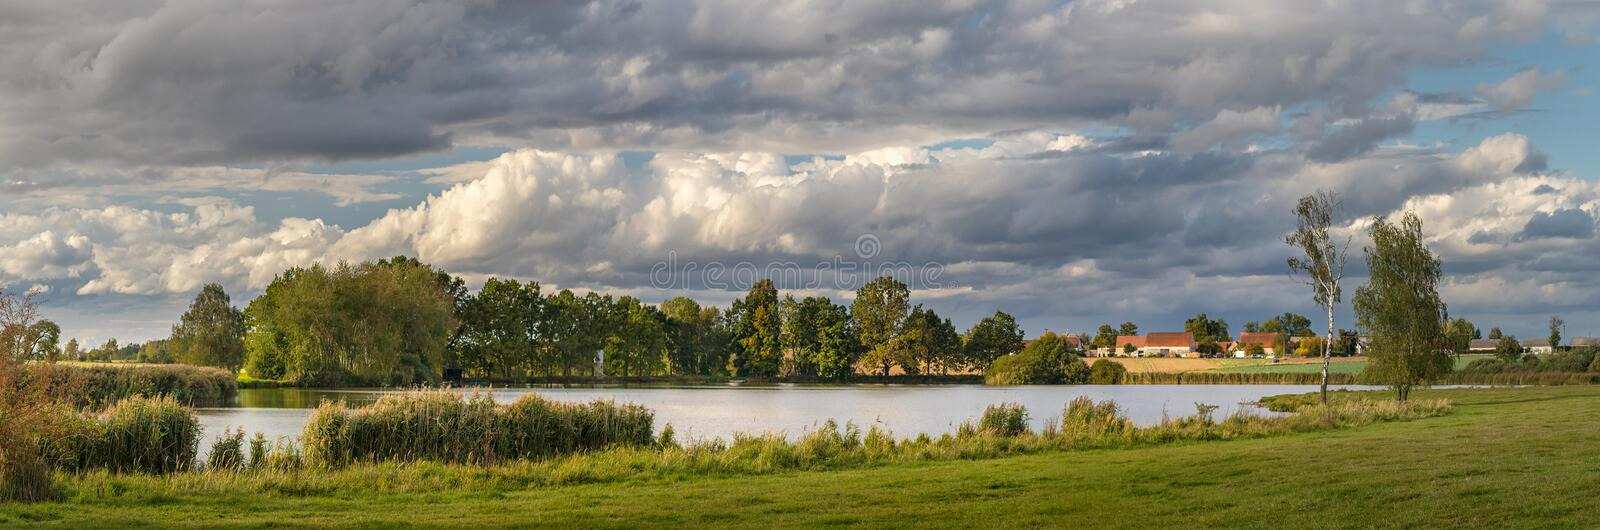 Picturesque country landscape with pond, meadow and trees stock images